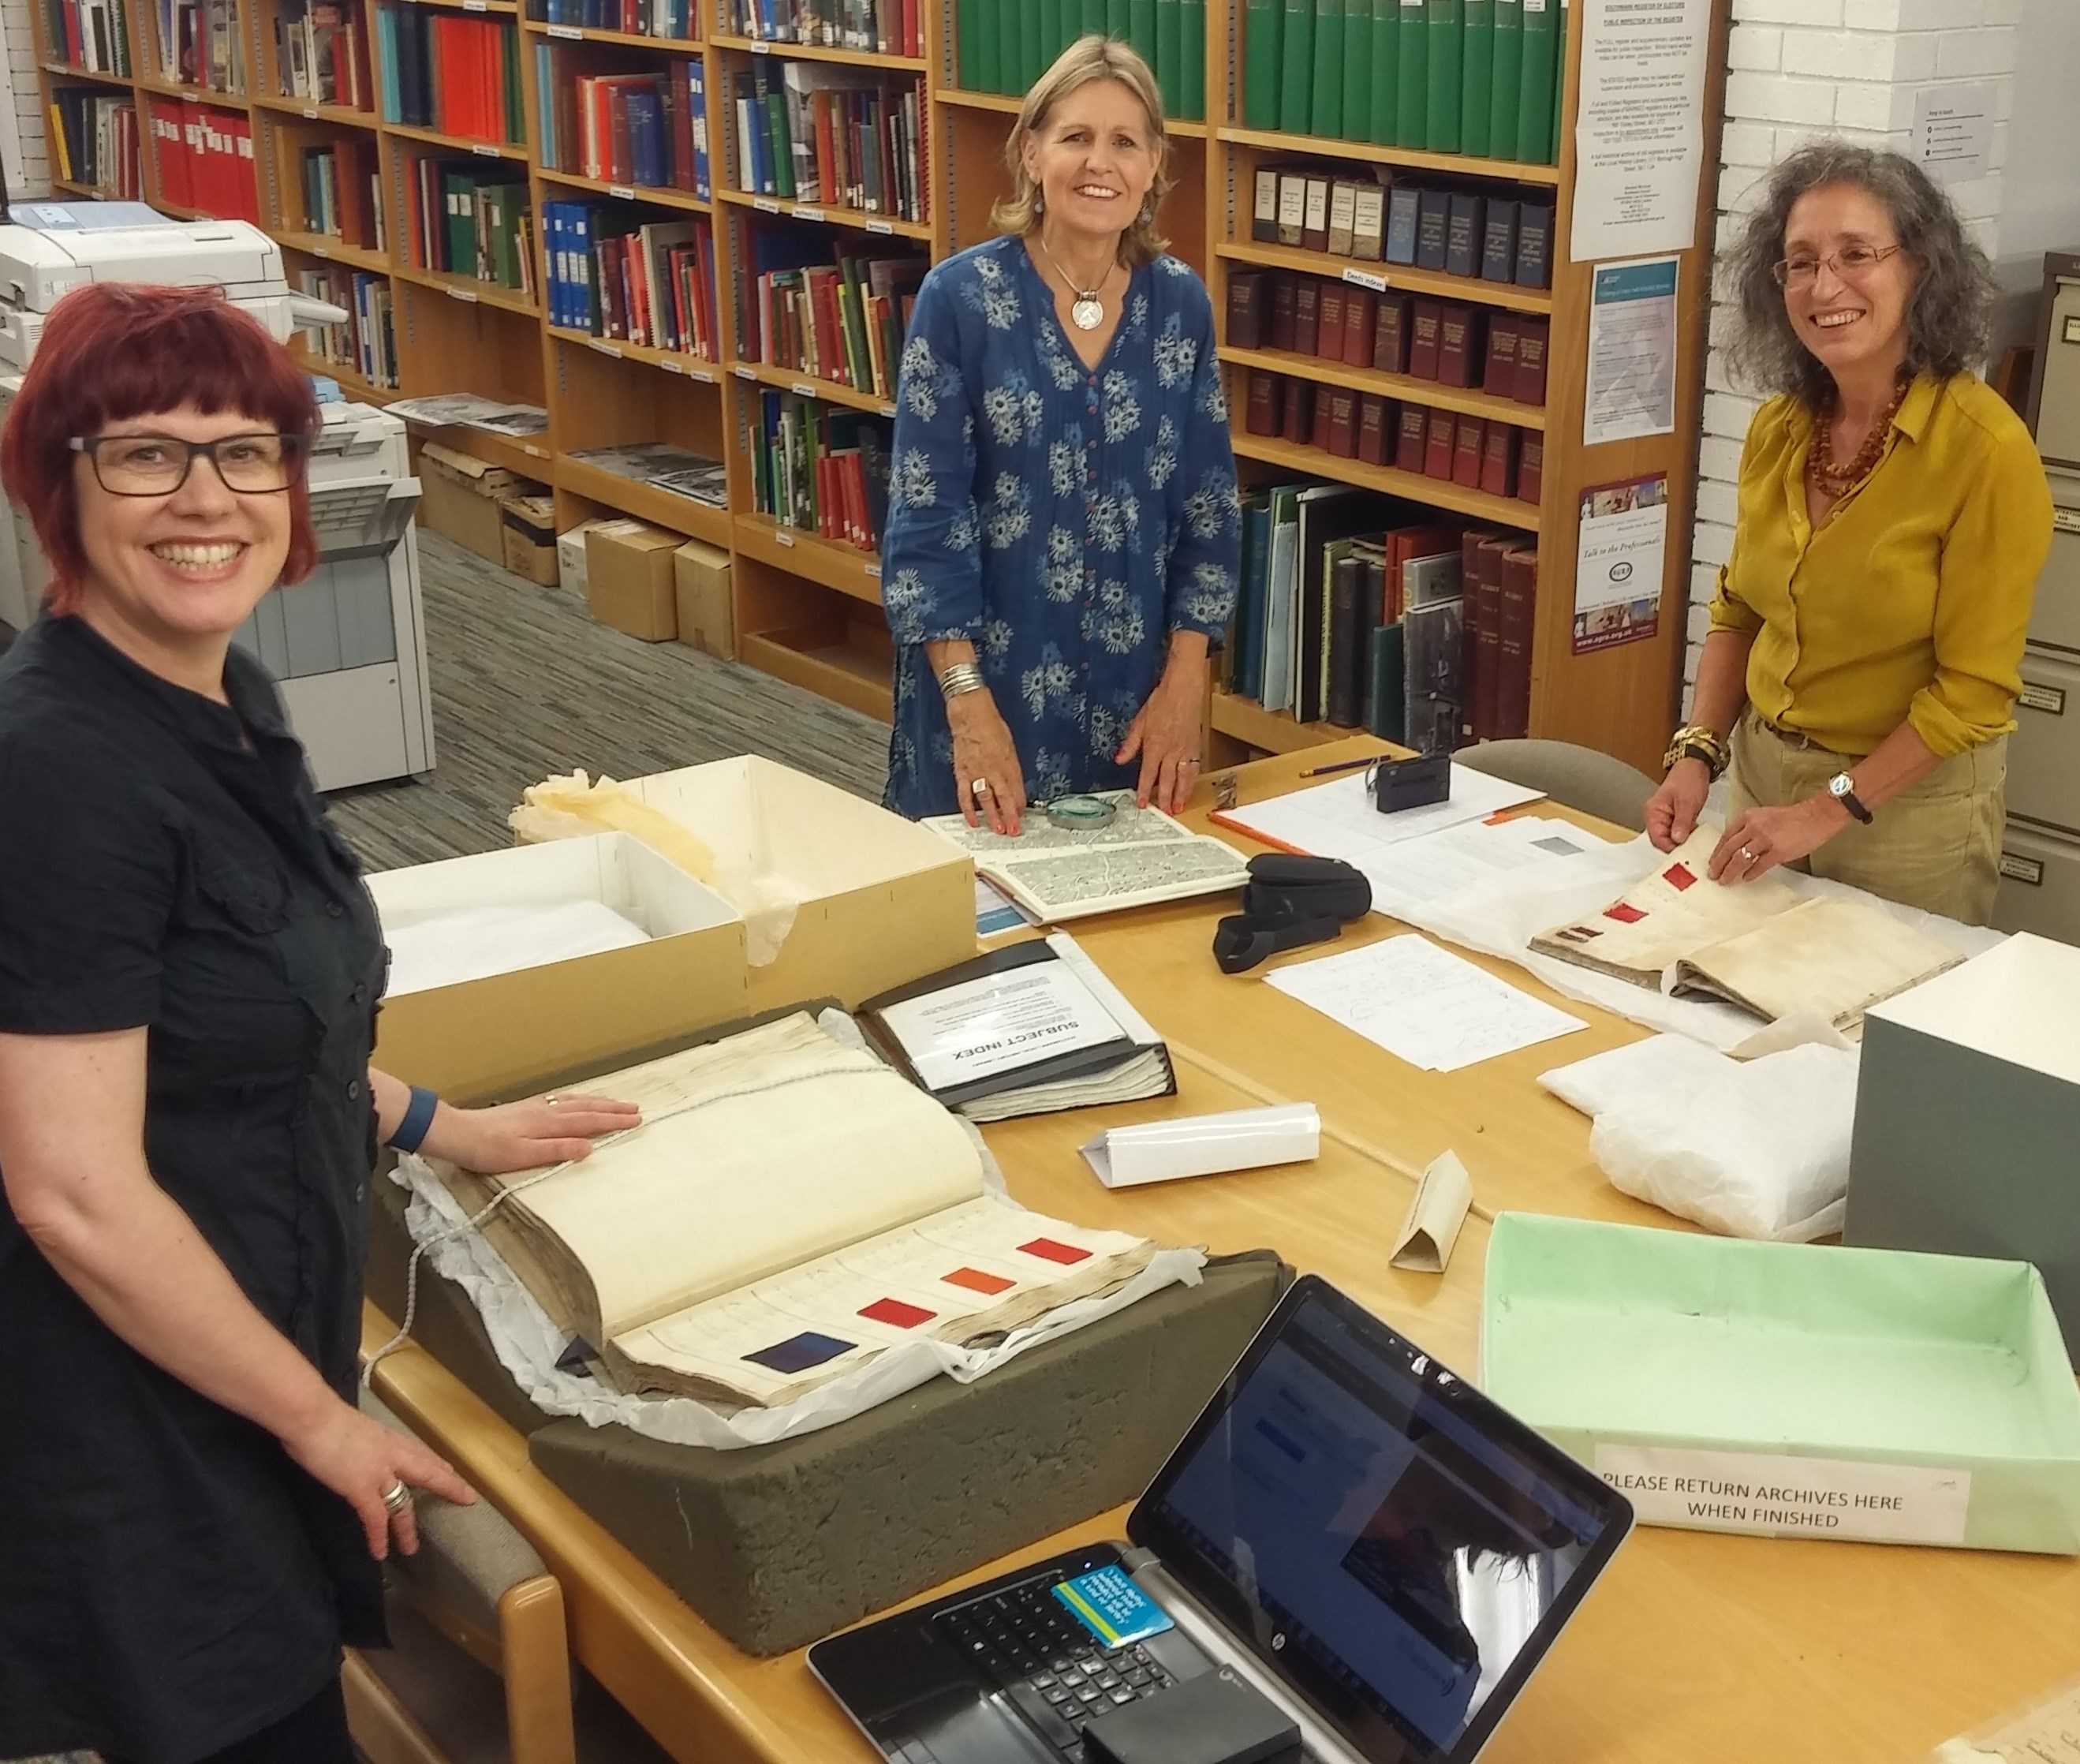 Anita, Jenny Balfour-Paul and Dominique Cardon examining the early 18th C. Crutchley Archive of dyeing manuals at Southwark Local History Library and Archive 2